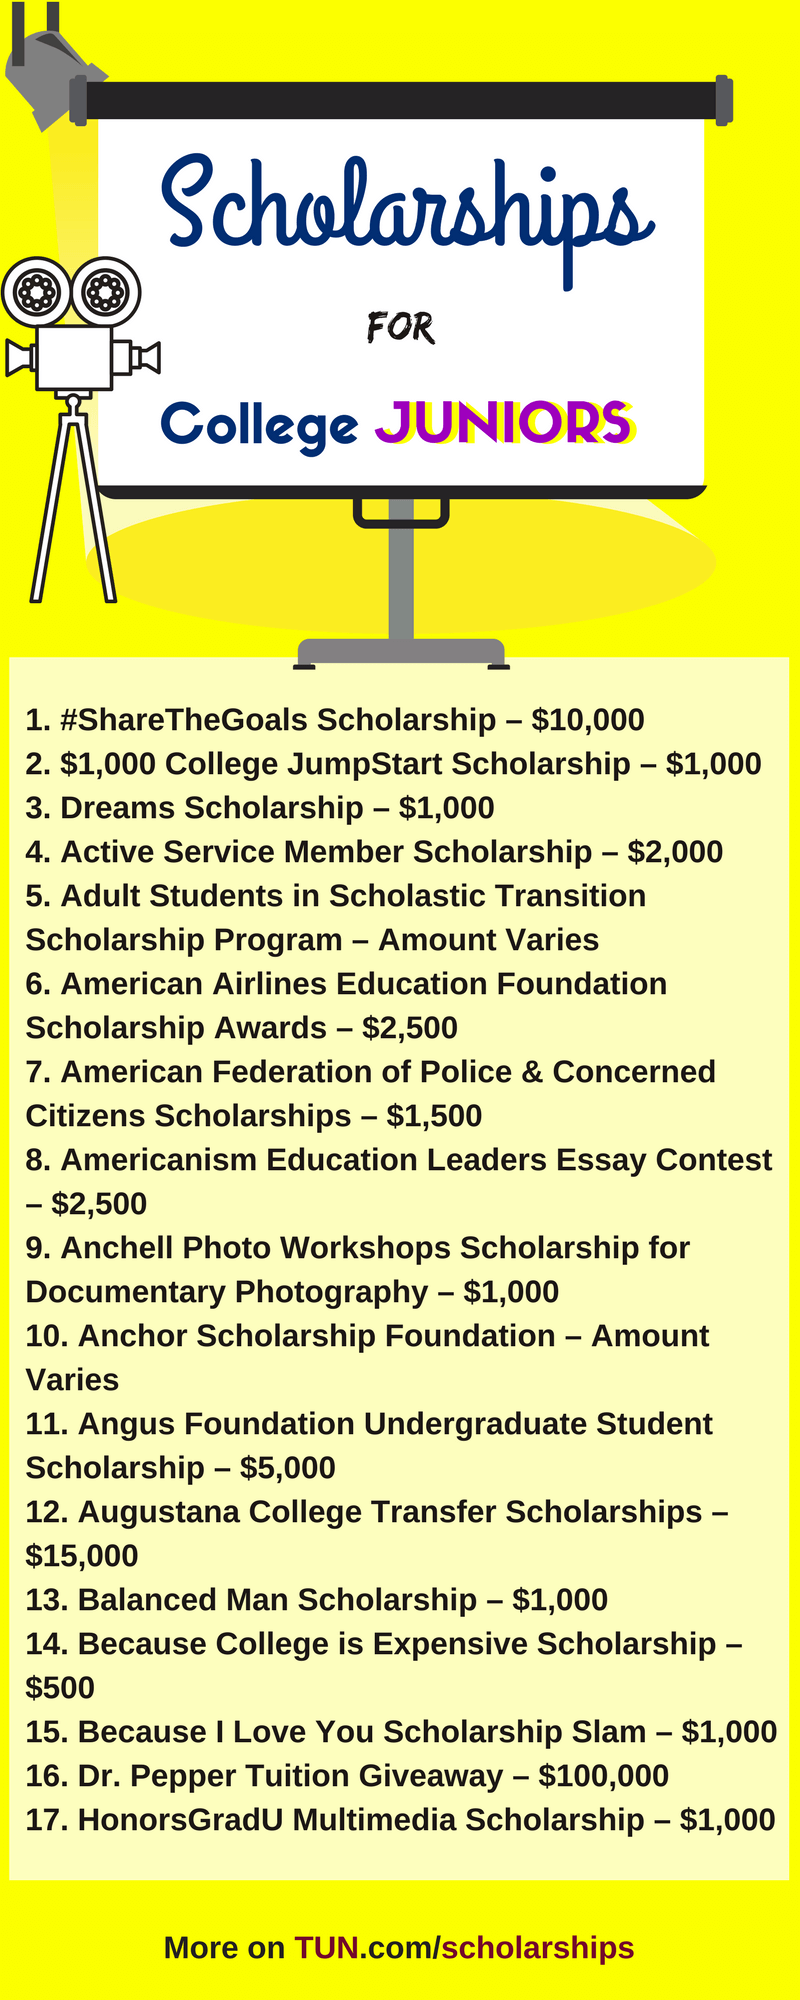 Scholarships For College Juniors